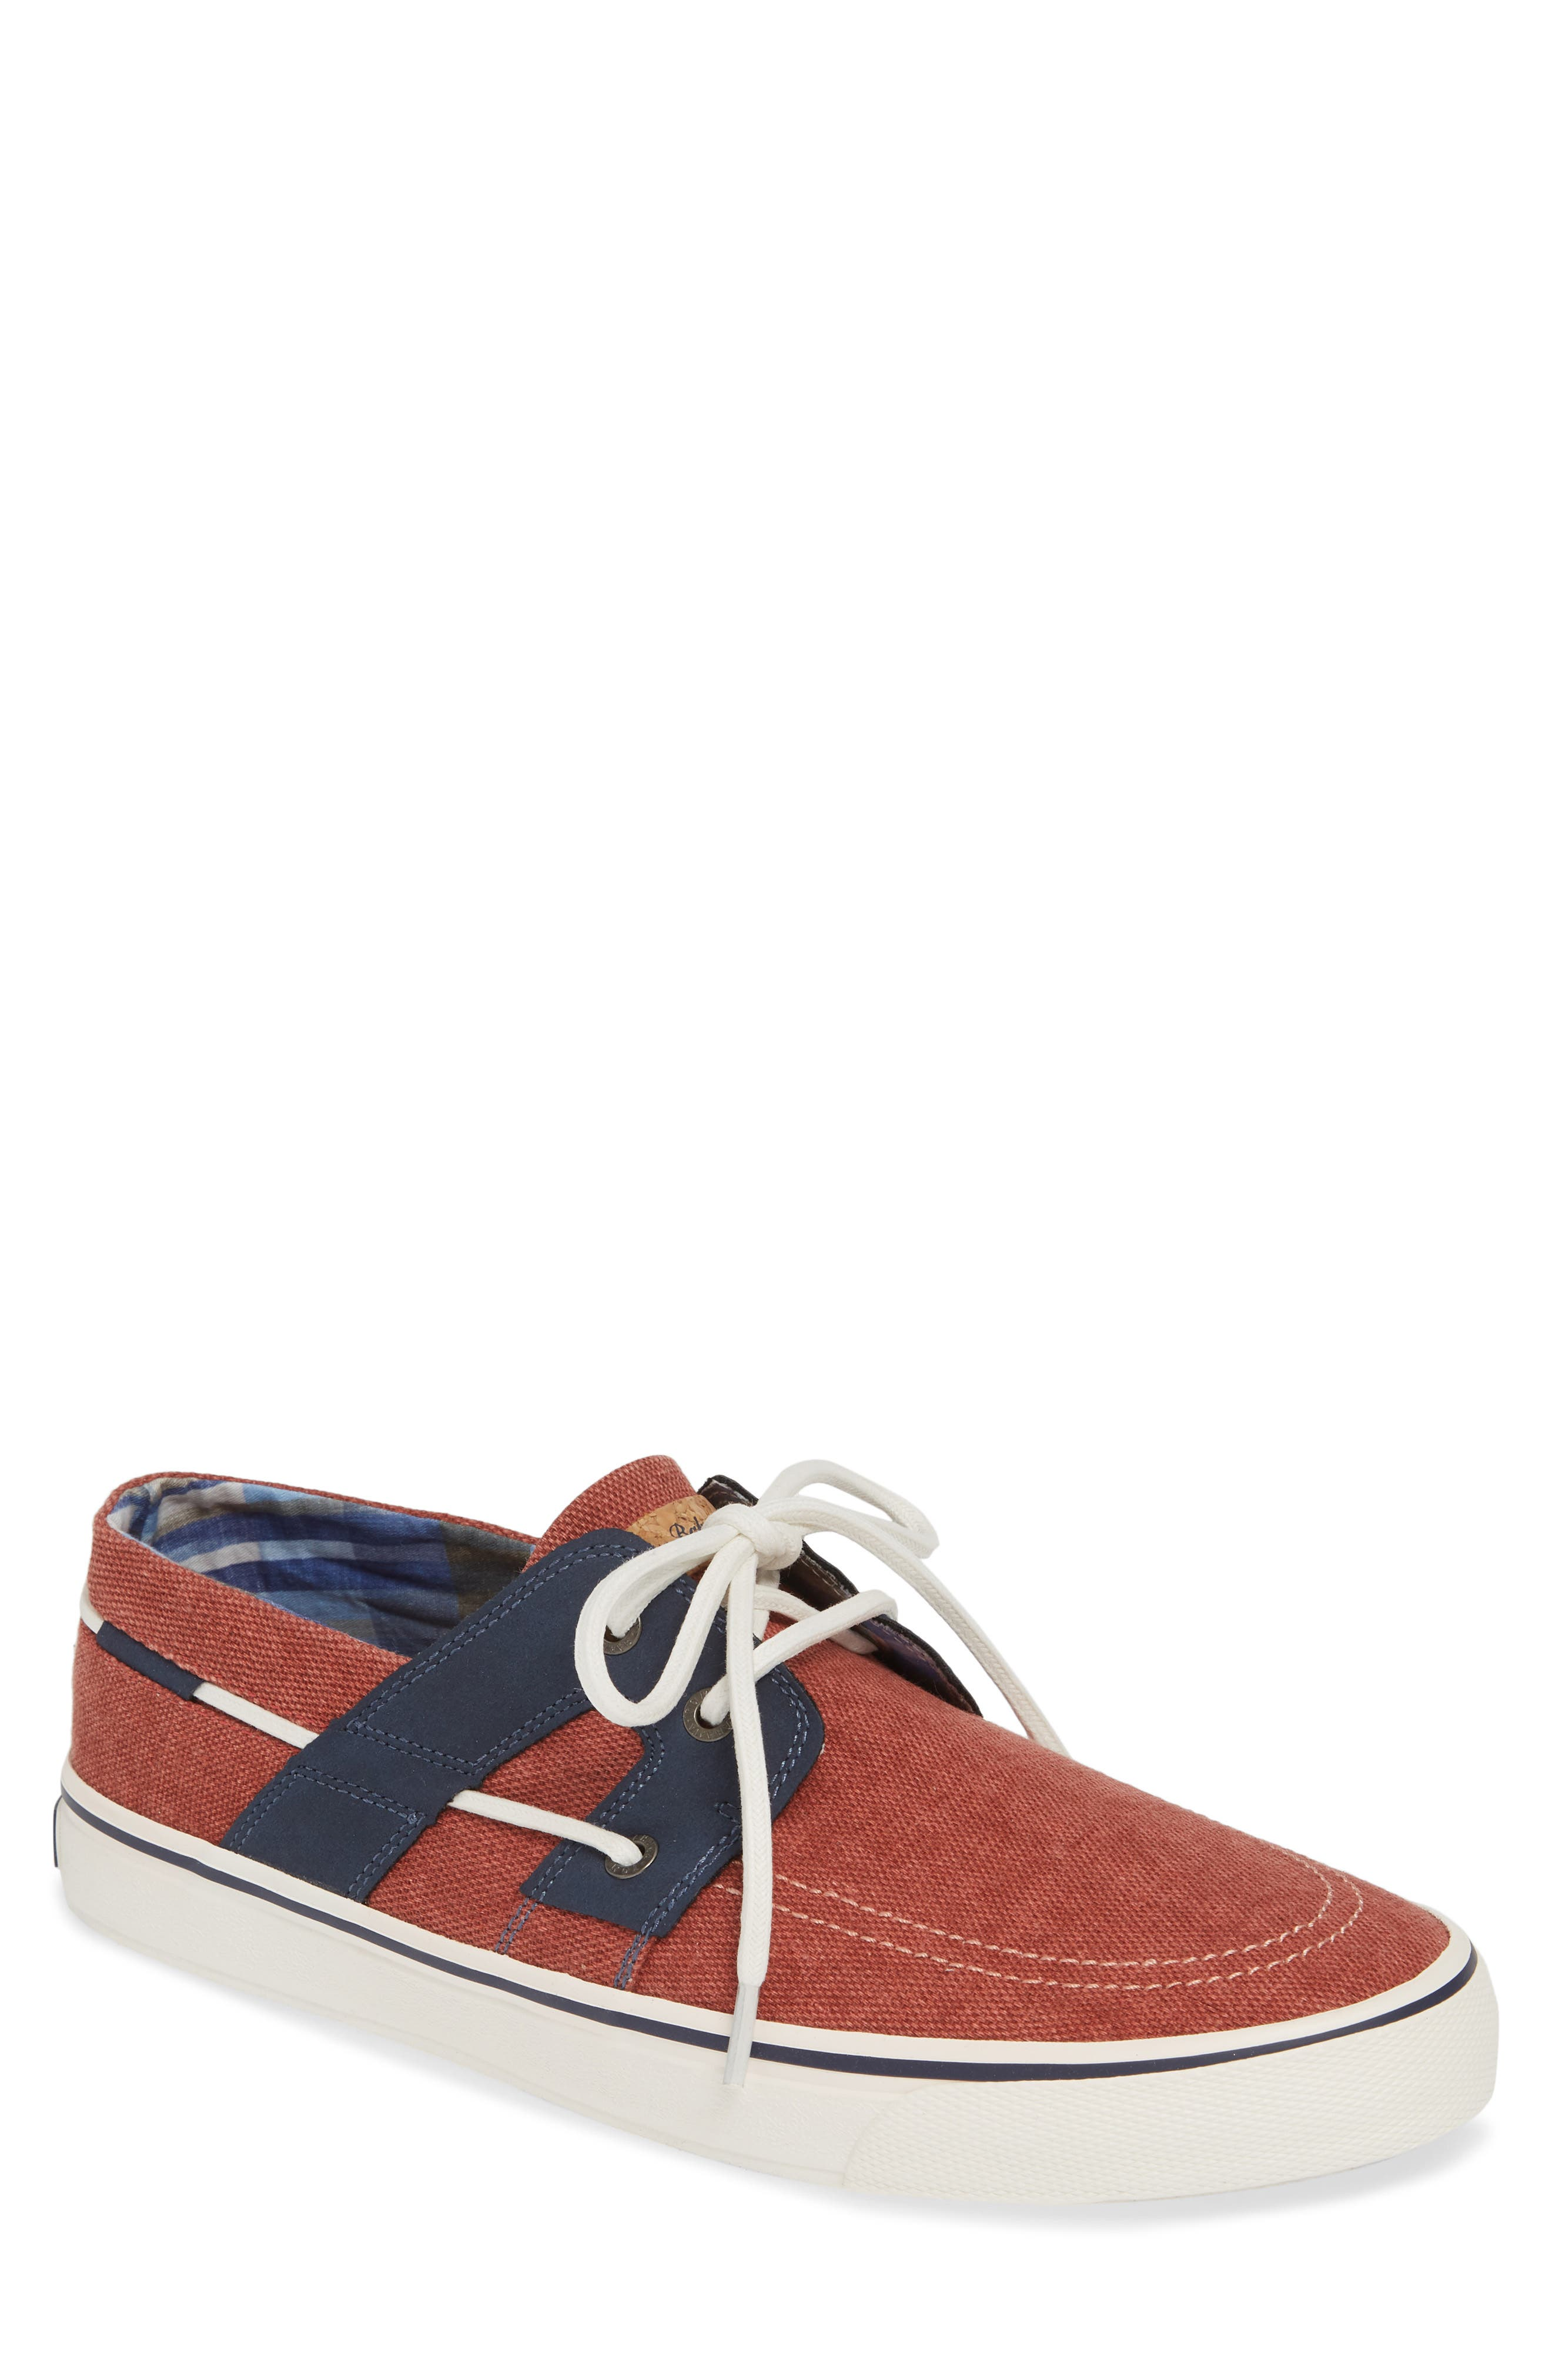 TOMMY BAHAMA, Stripe Breaker Sneaker, Main thumbnail 1, color, RED WASHED CANVAS/ LEATHER